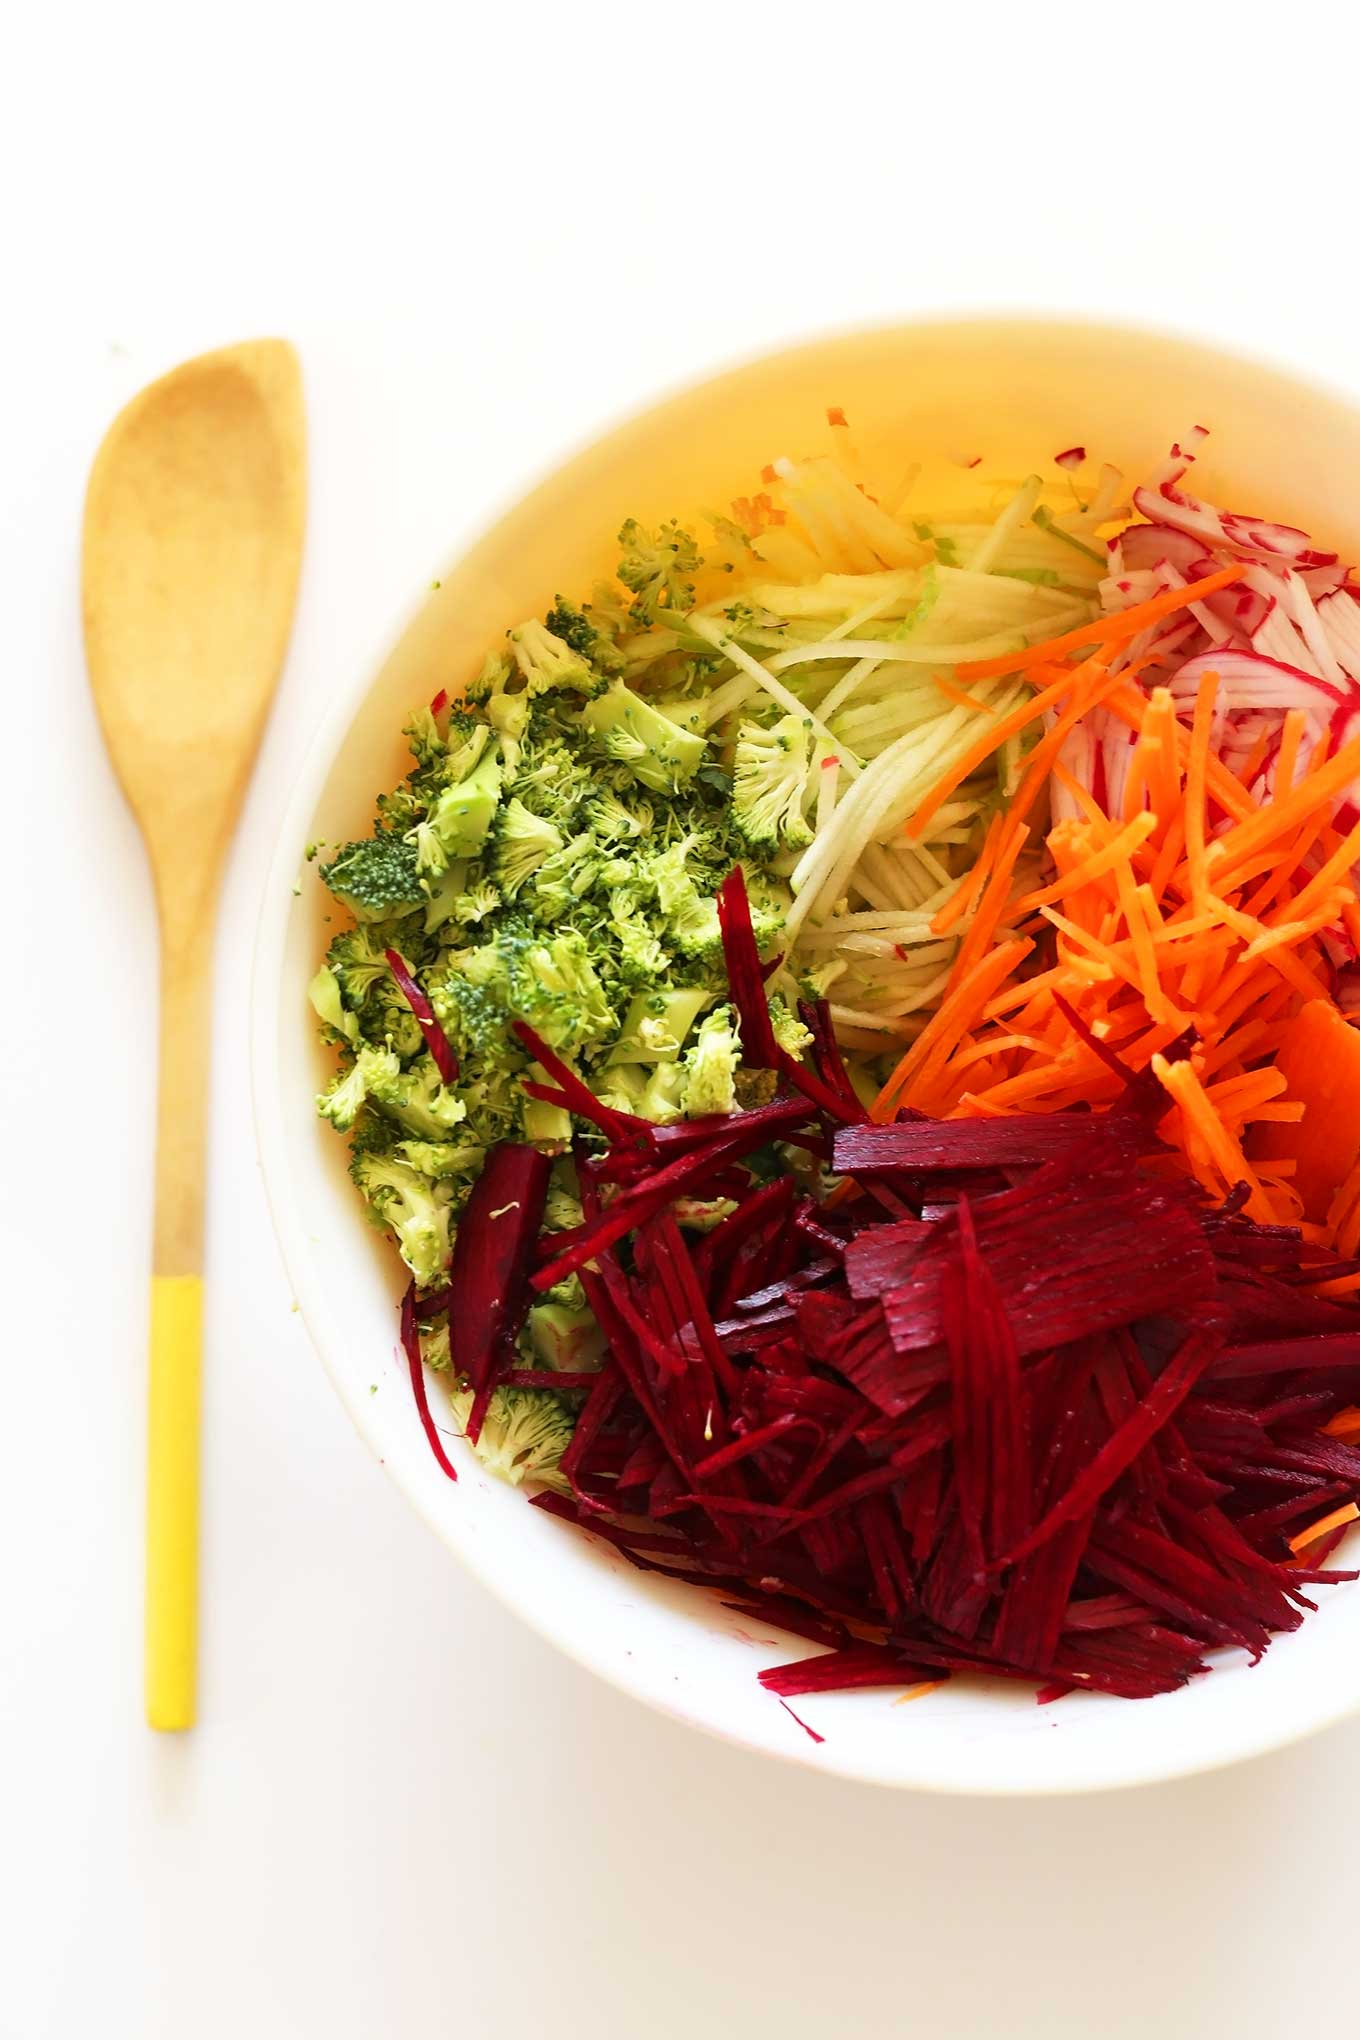 Freshly sliced vegetables in a bowl for our healthy fall slaw